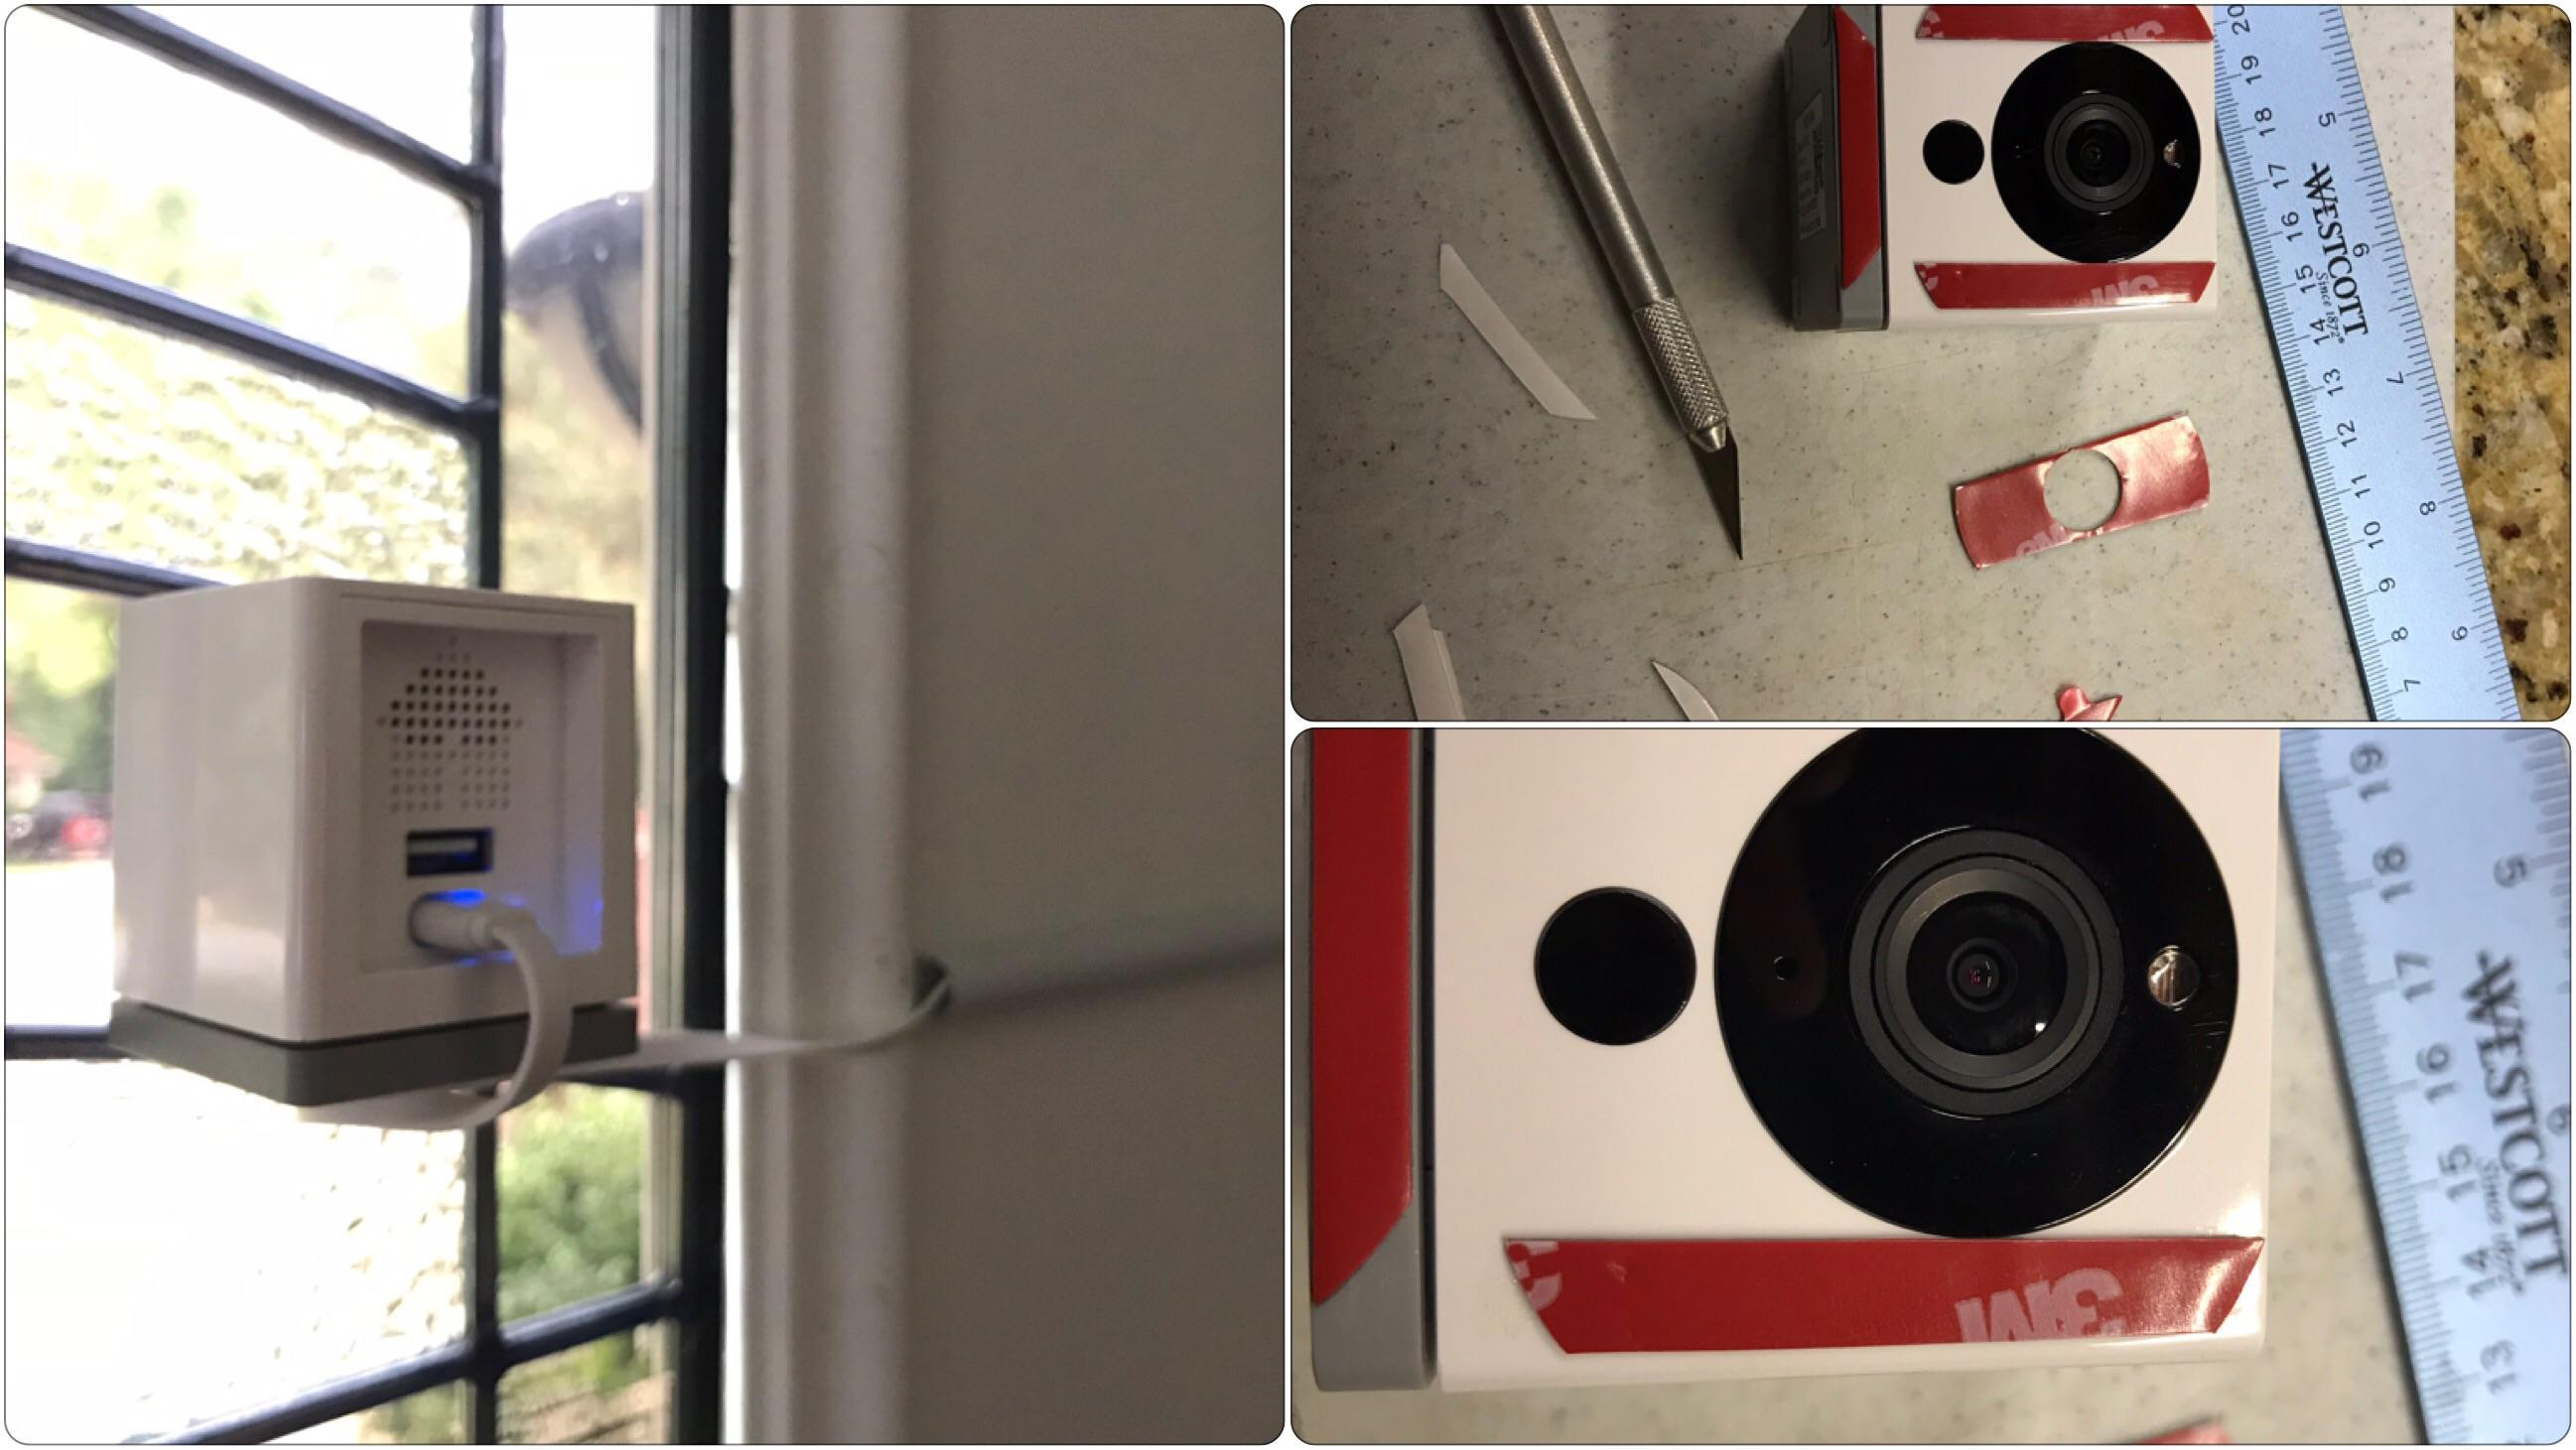 Best ideas about Wyze Cam Outdoor . Save or Pin e way to safely use a Wyze Camera as Outdoor Camera Now.